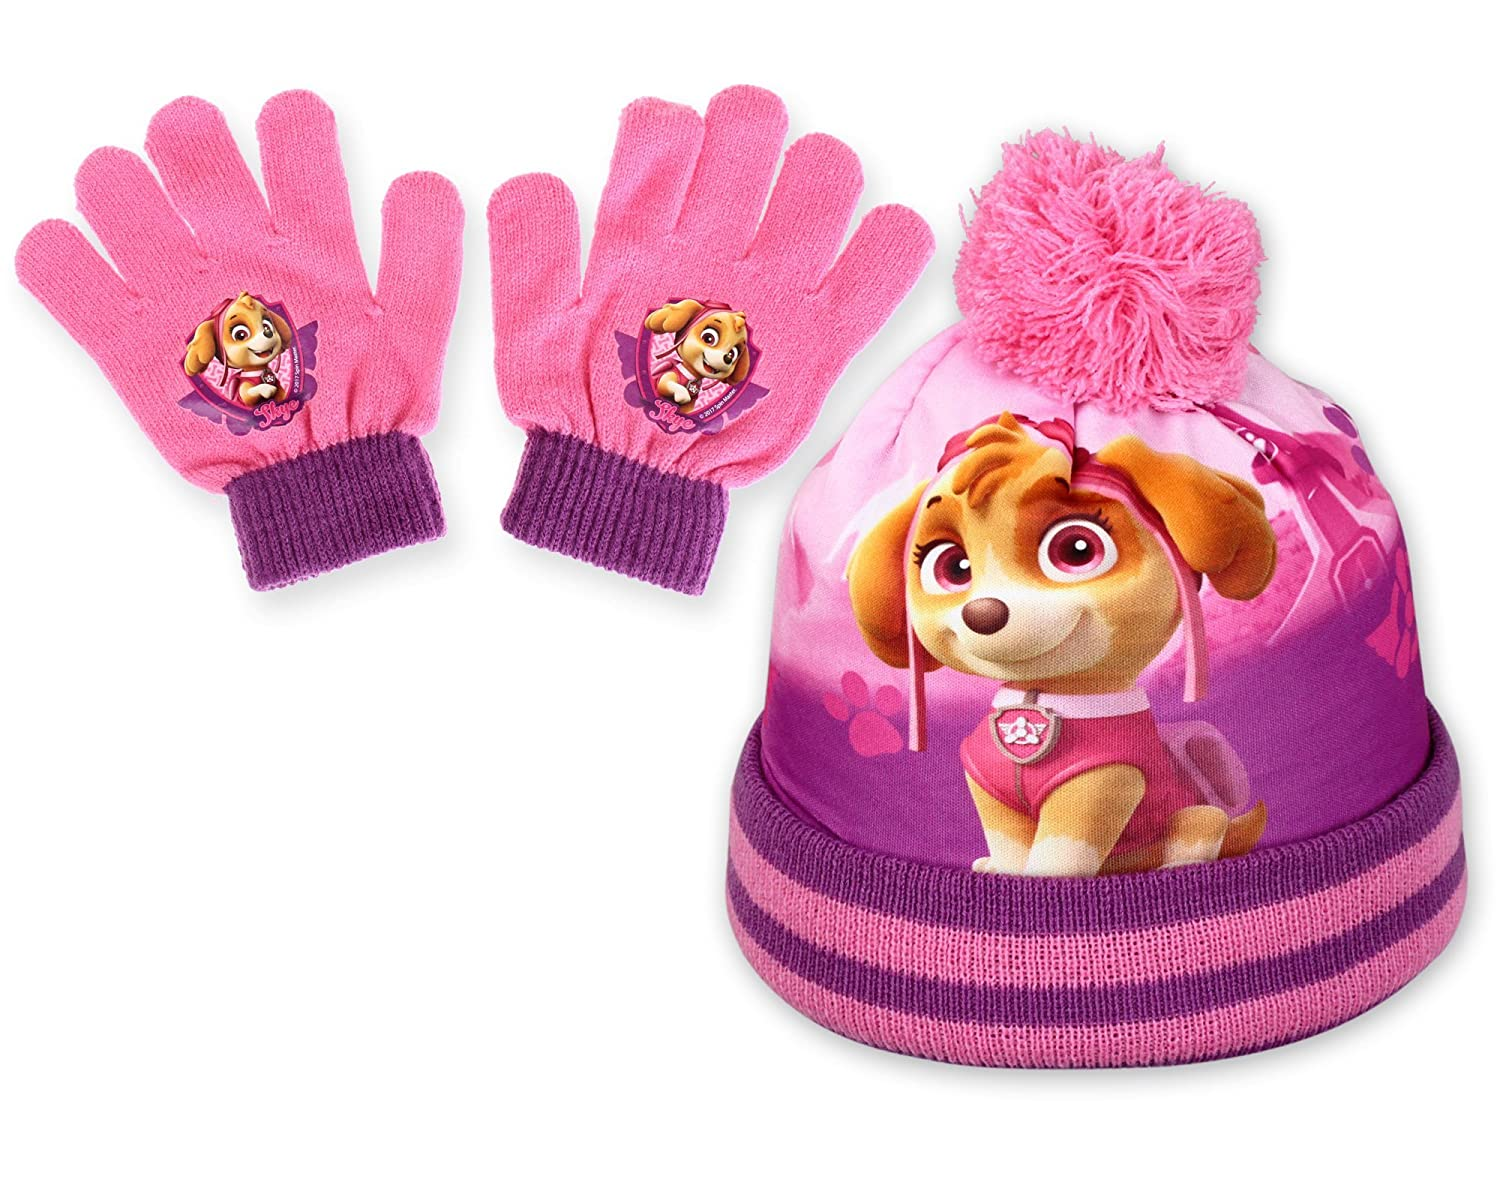 NEW GIRLS PAW PATROL WINTER HAT & GLOVE SET, GOOD QUALITY, OFFICIAL LICENCE PRODUCT